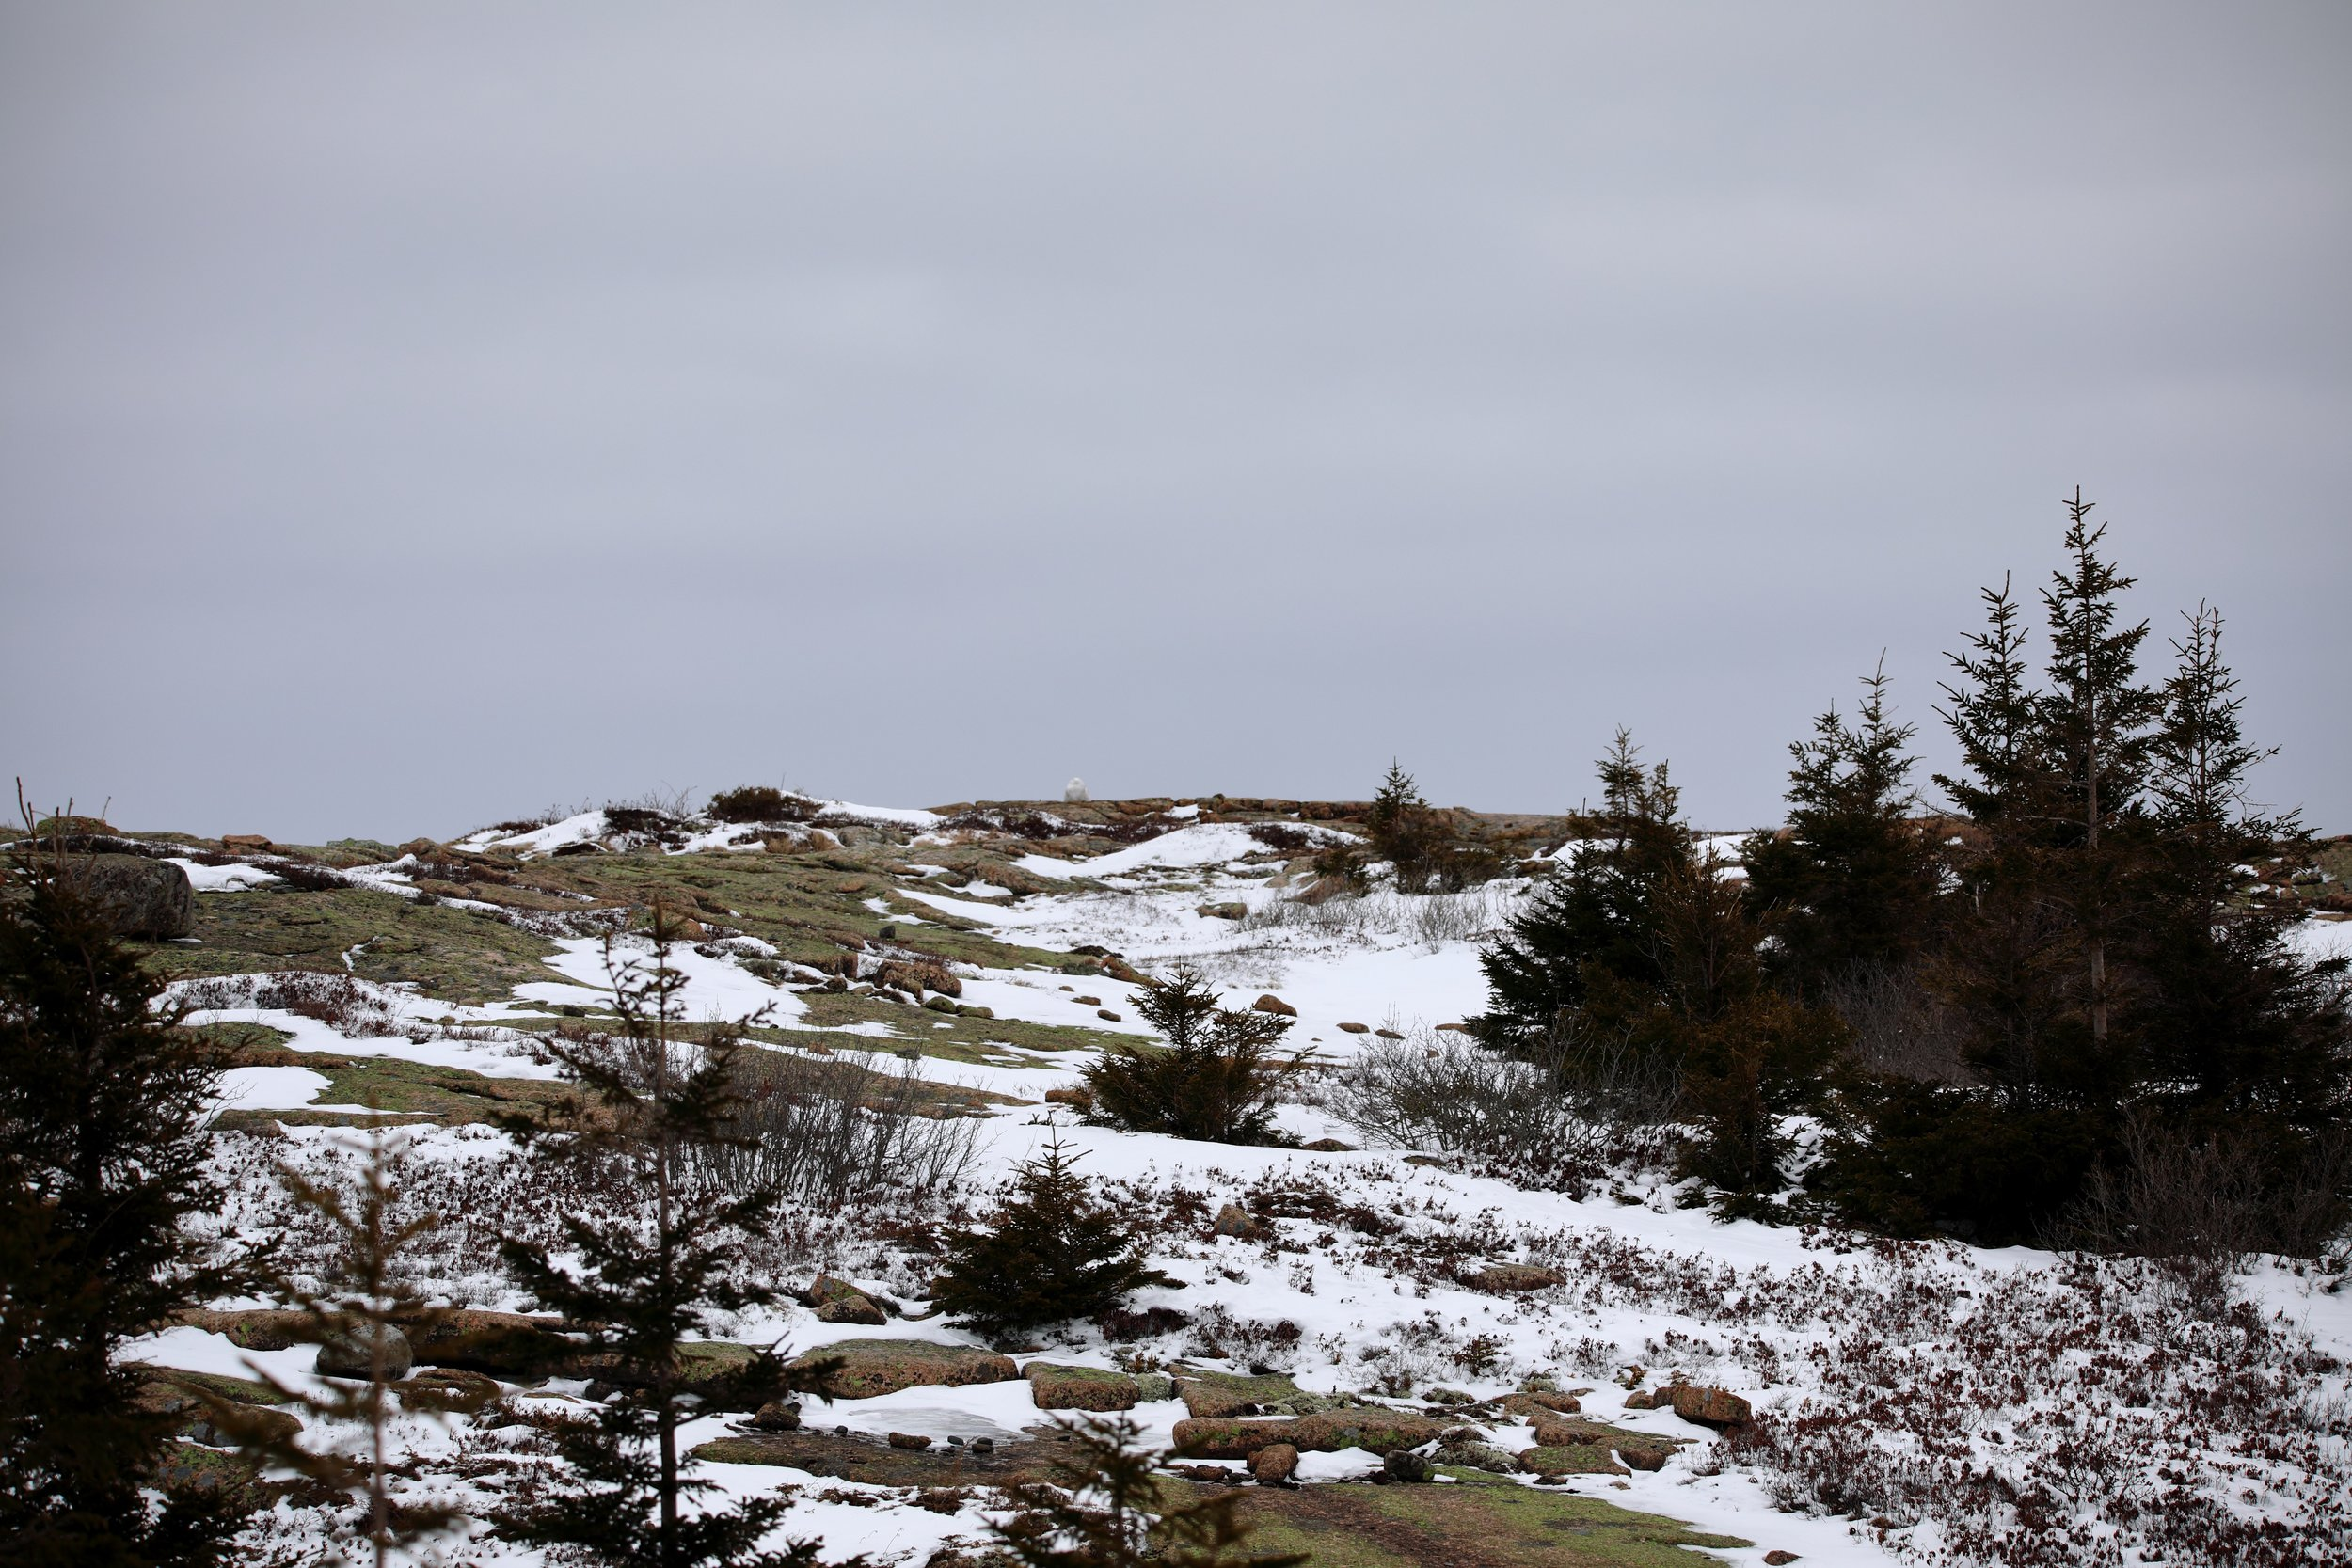 Can you find the snowy owl?